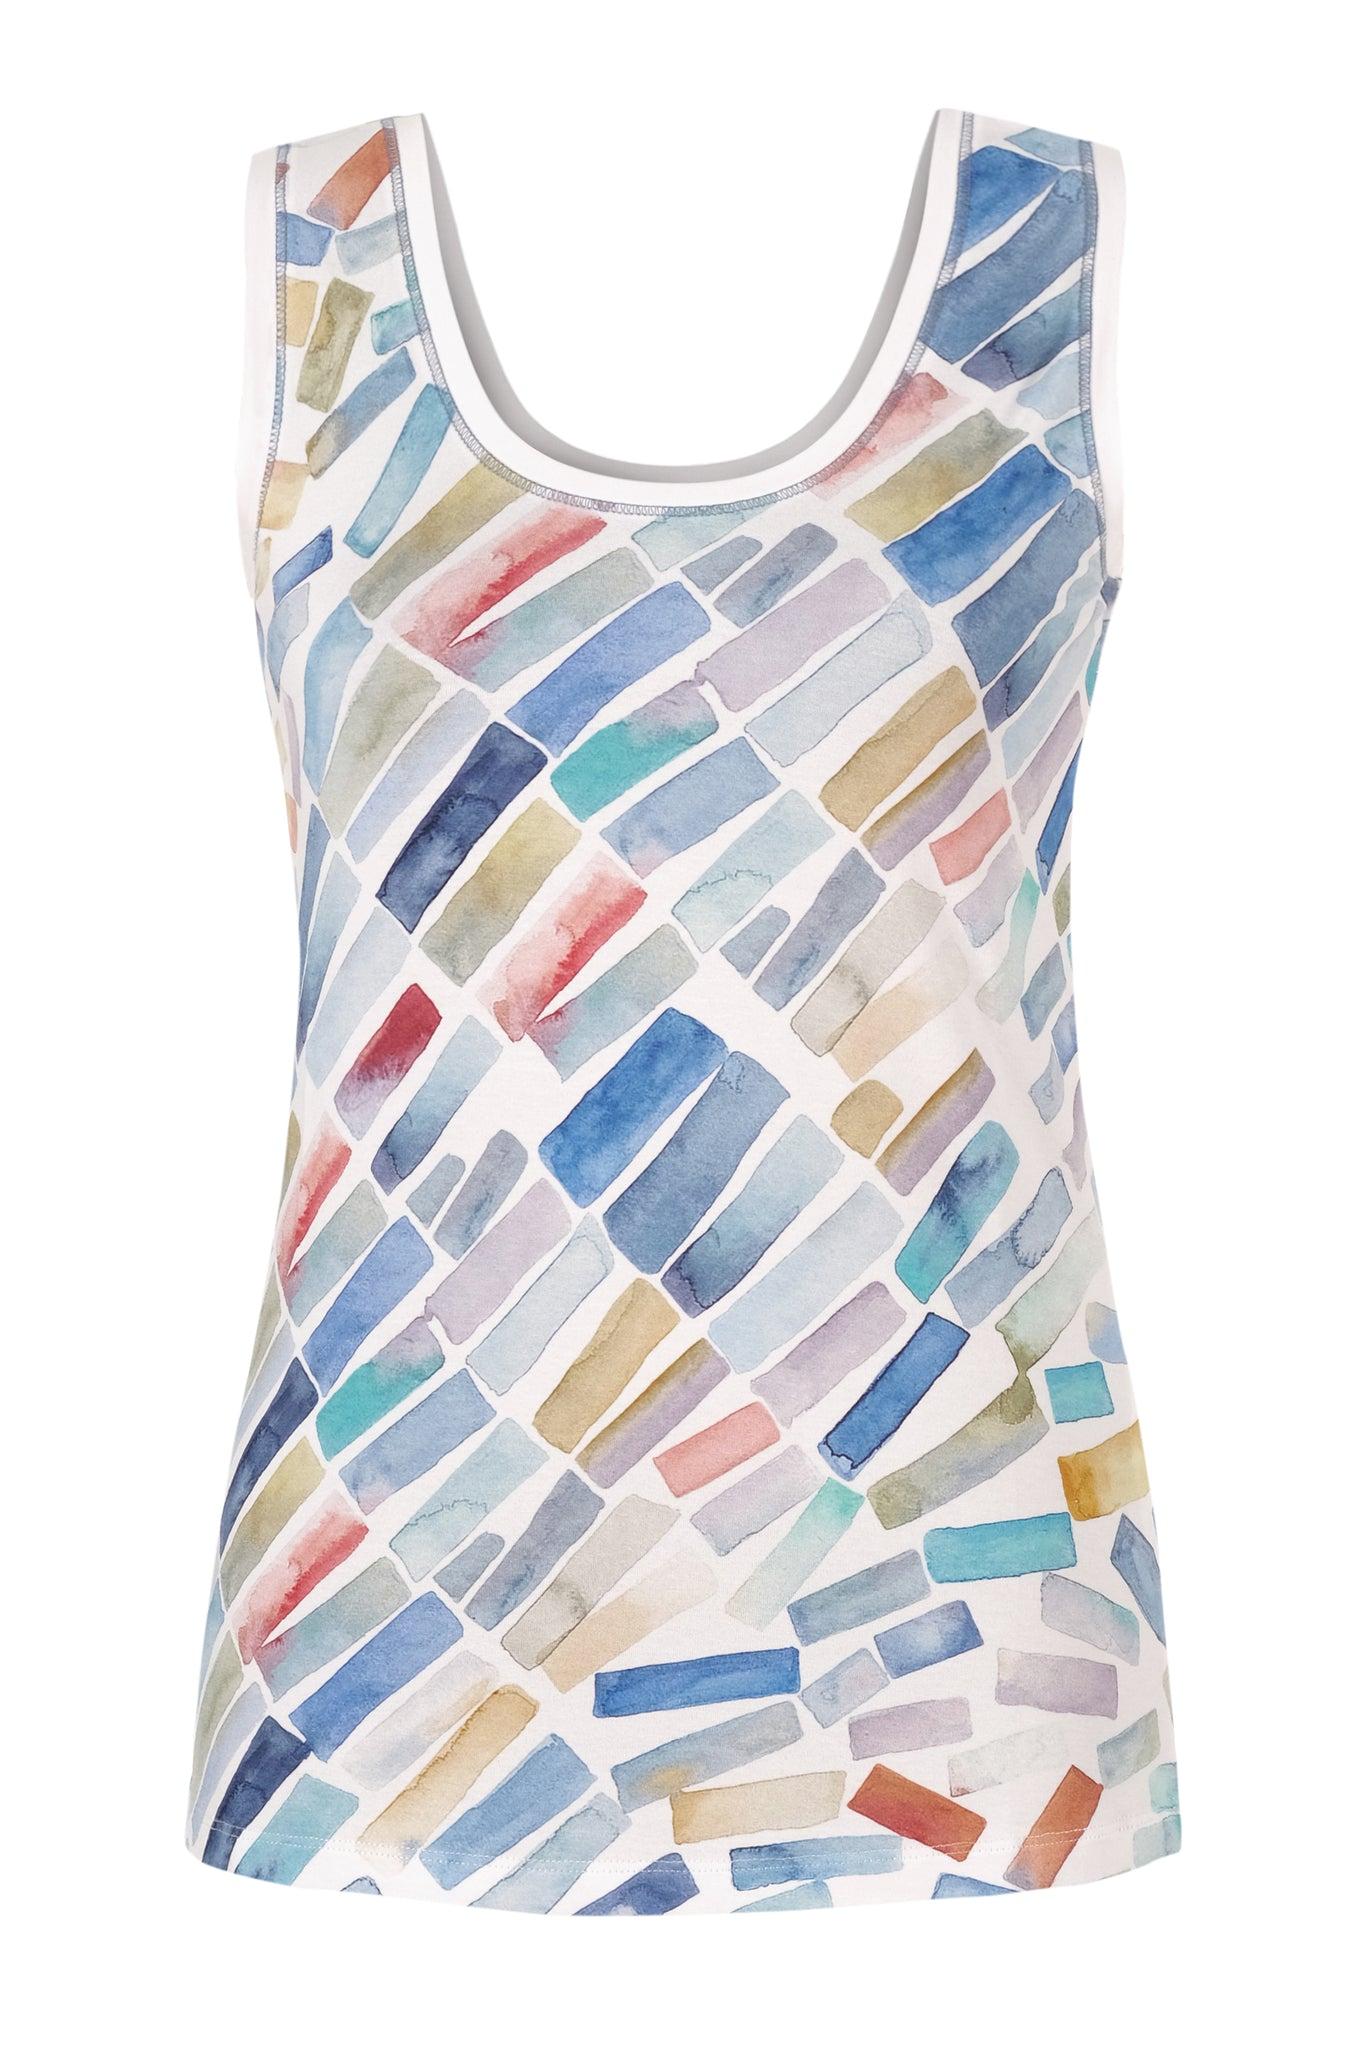 Group Think 1 Tank - NEW ARRIVAL